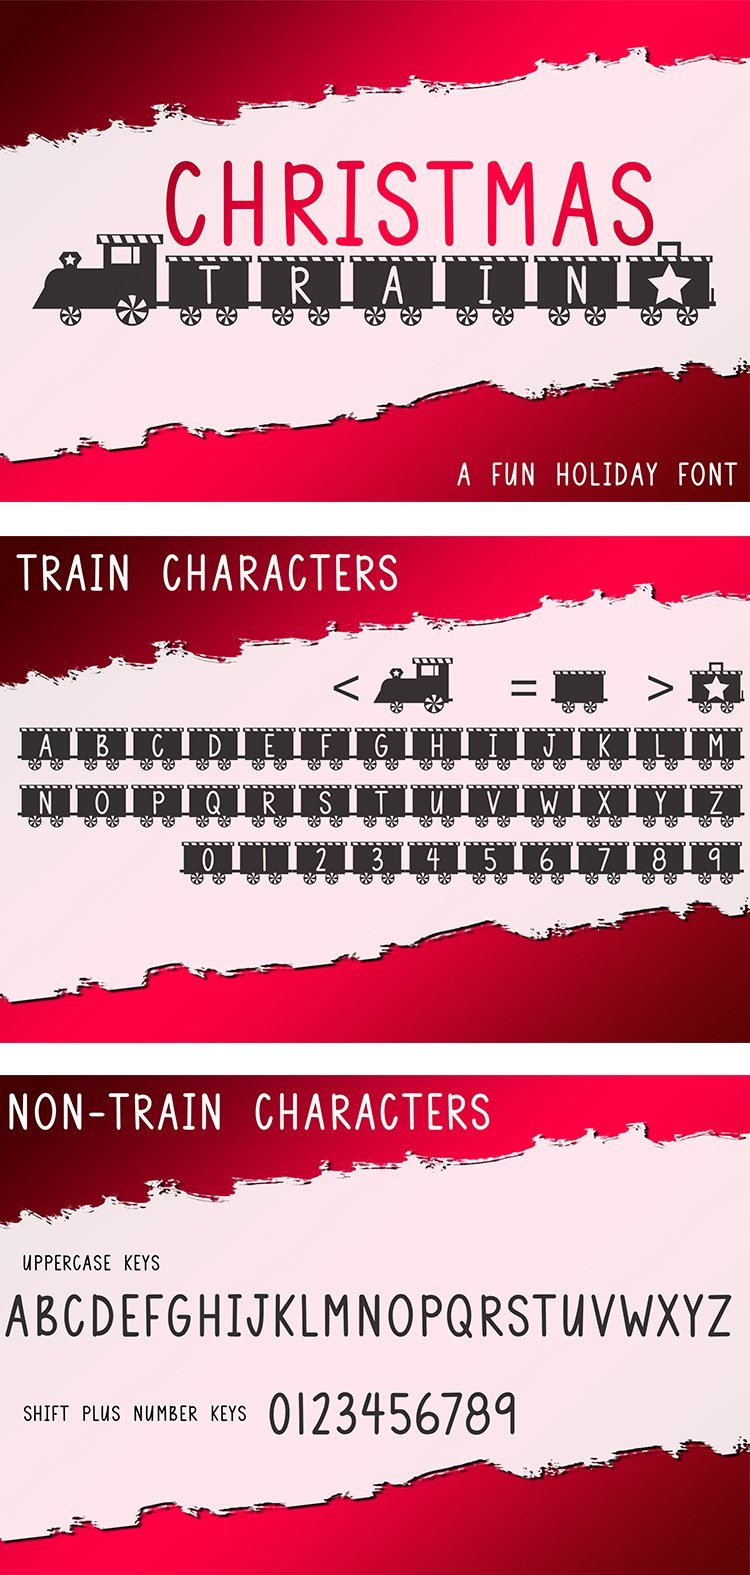 Christmas Train - A Fun Holiday Font example image 7